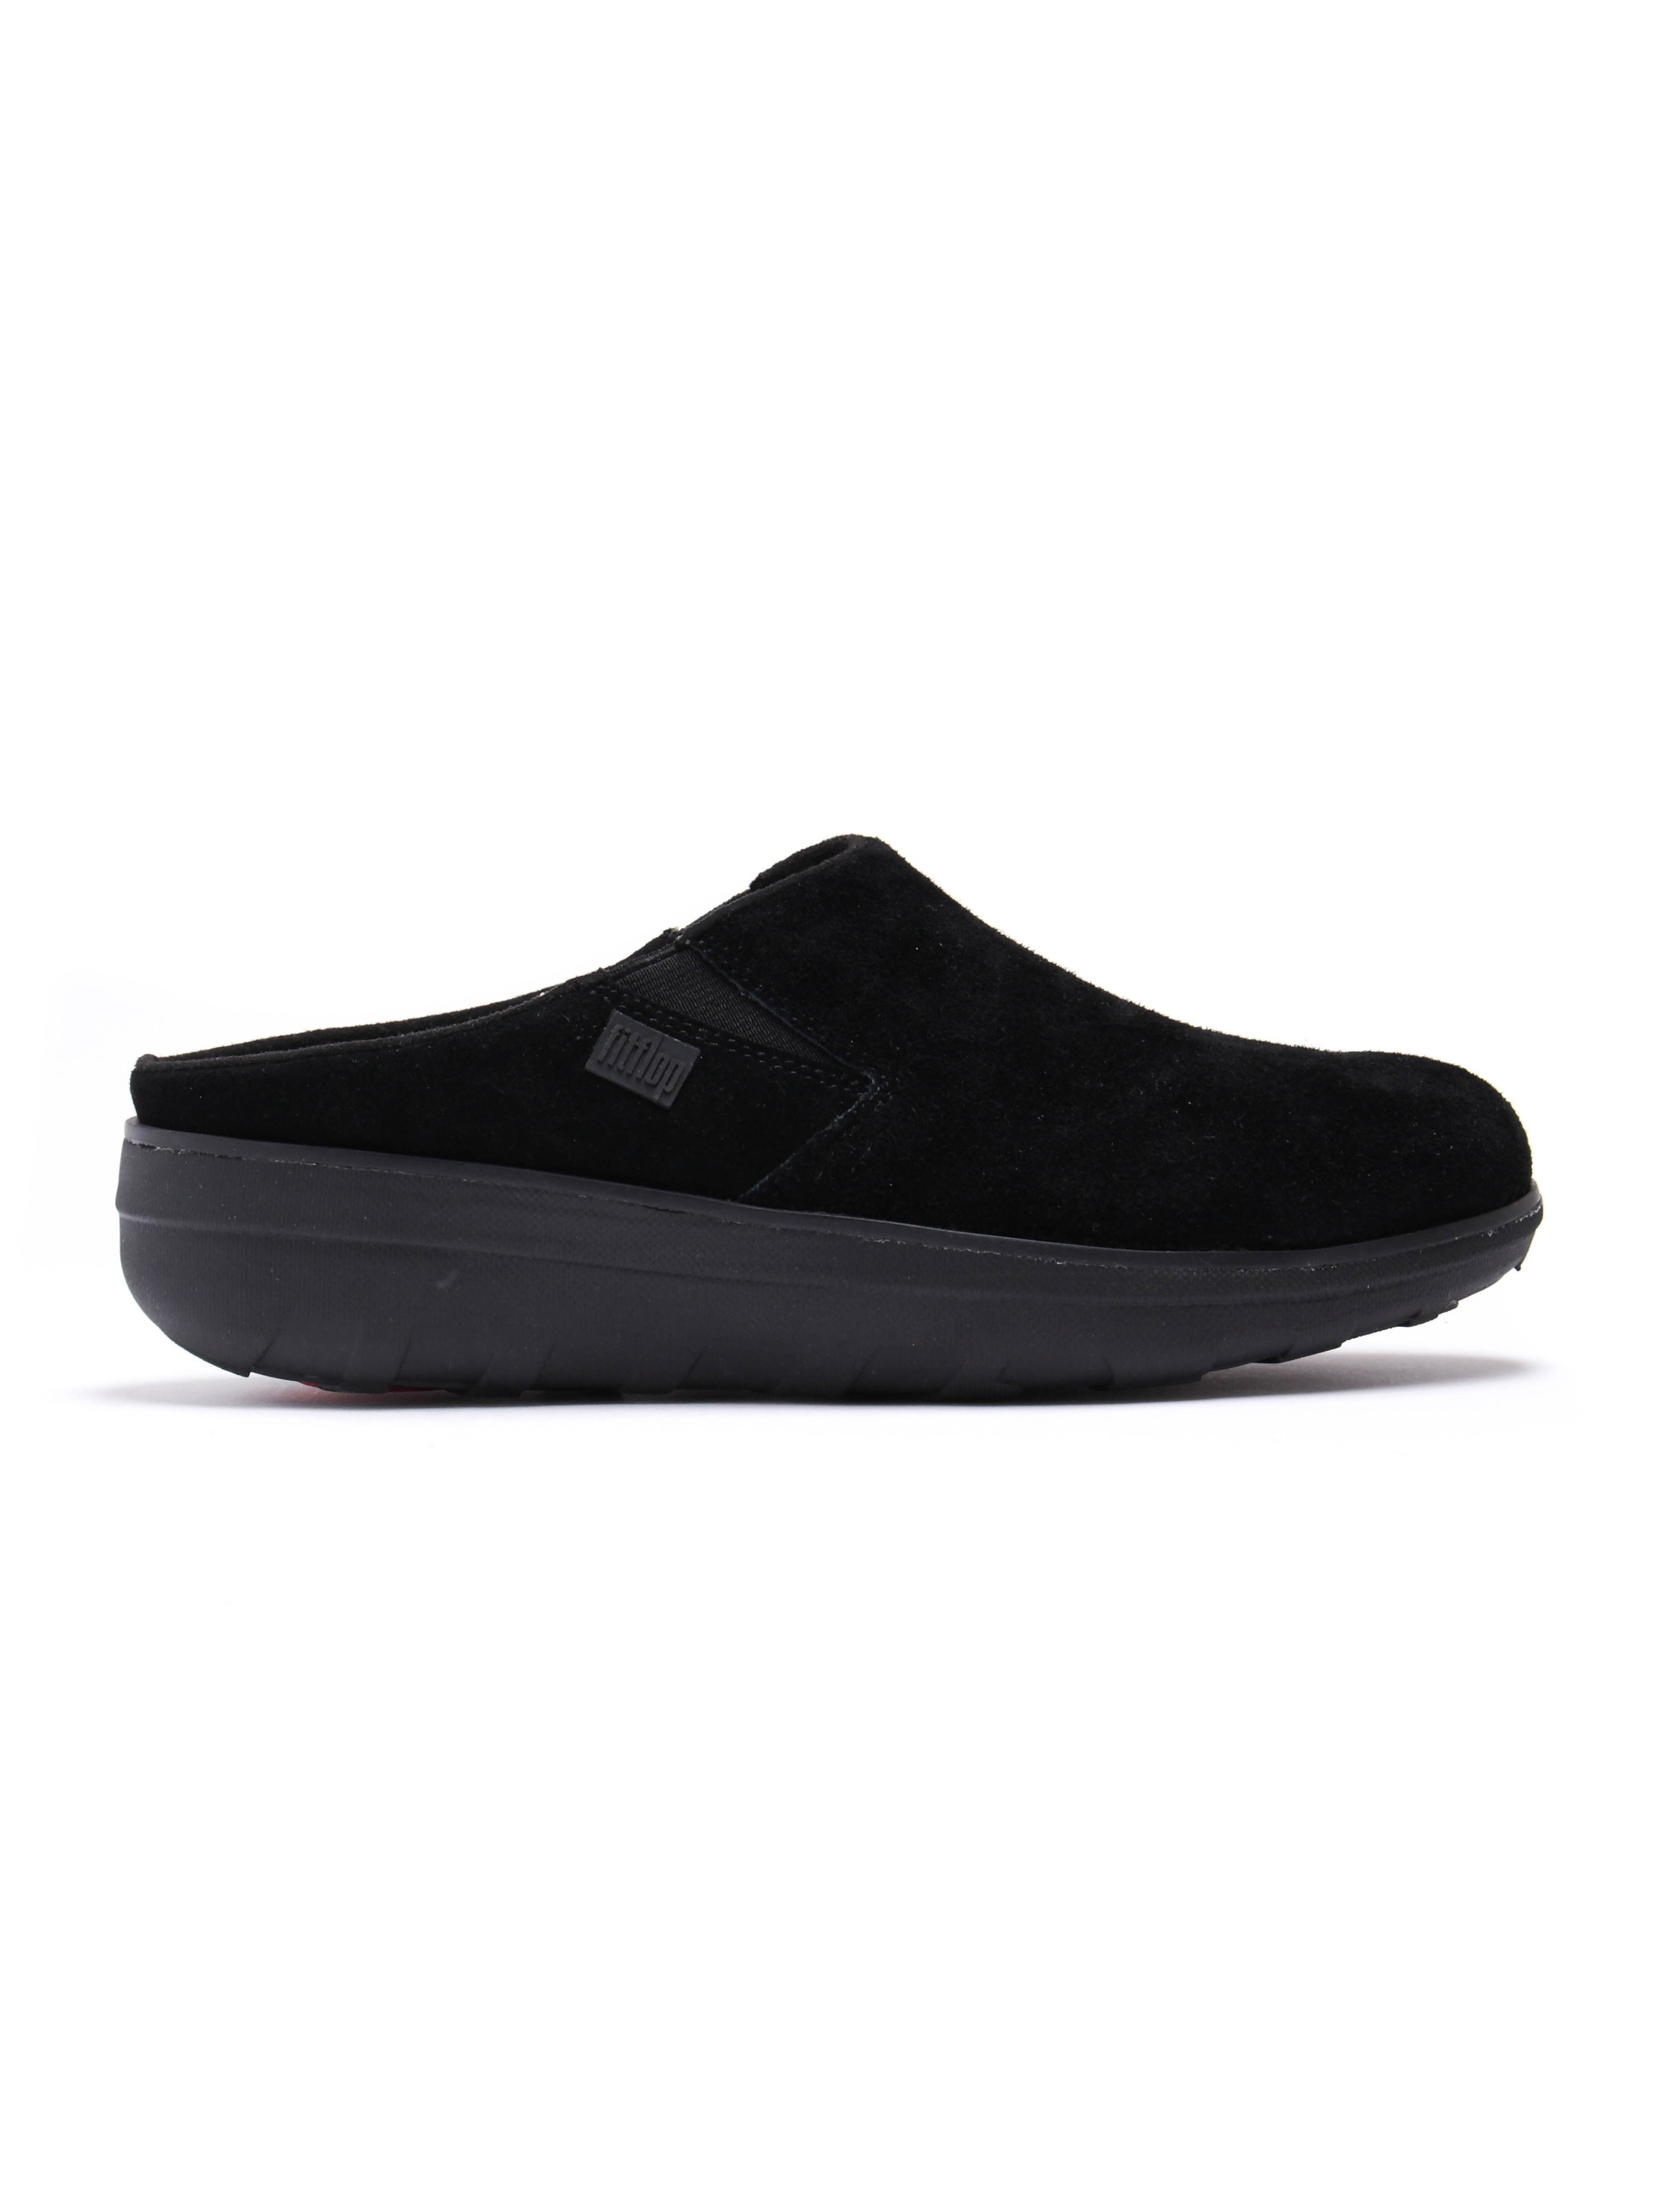 FitFlop Loaff? Suede Clog